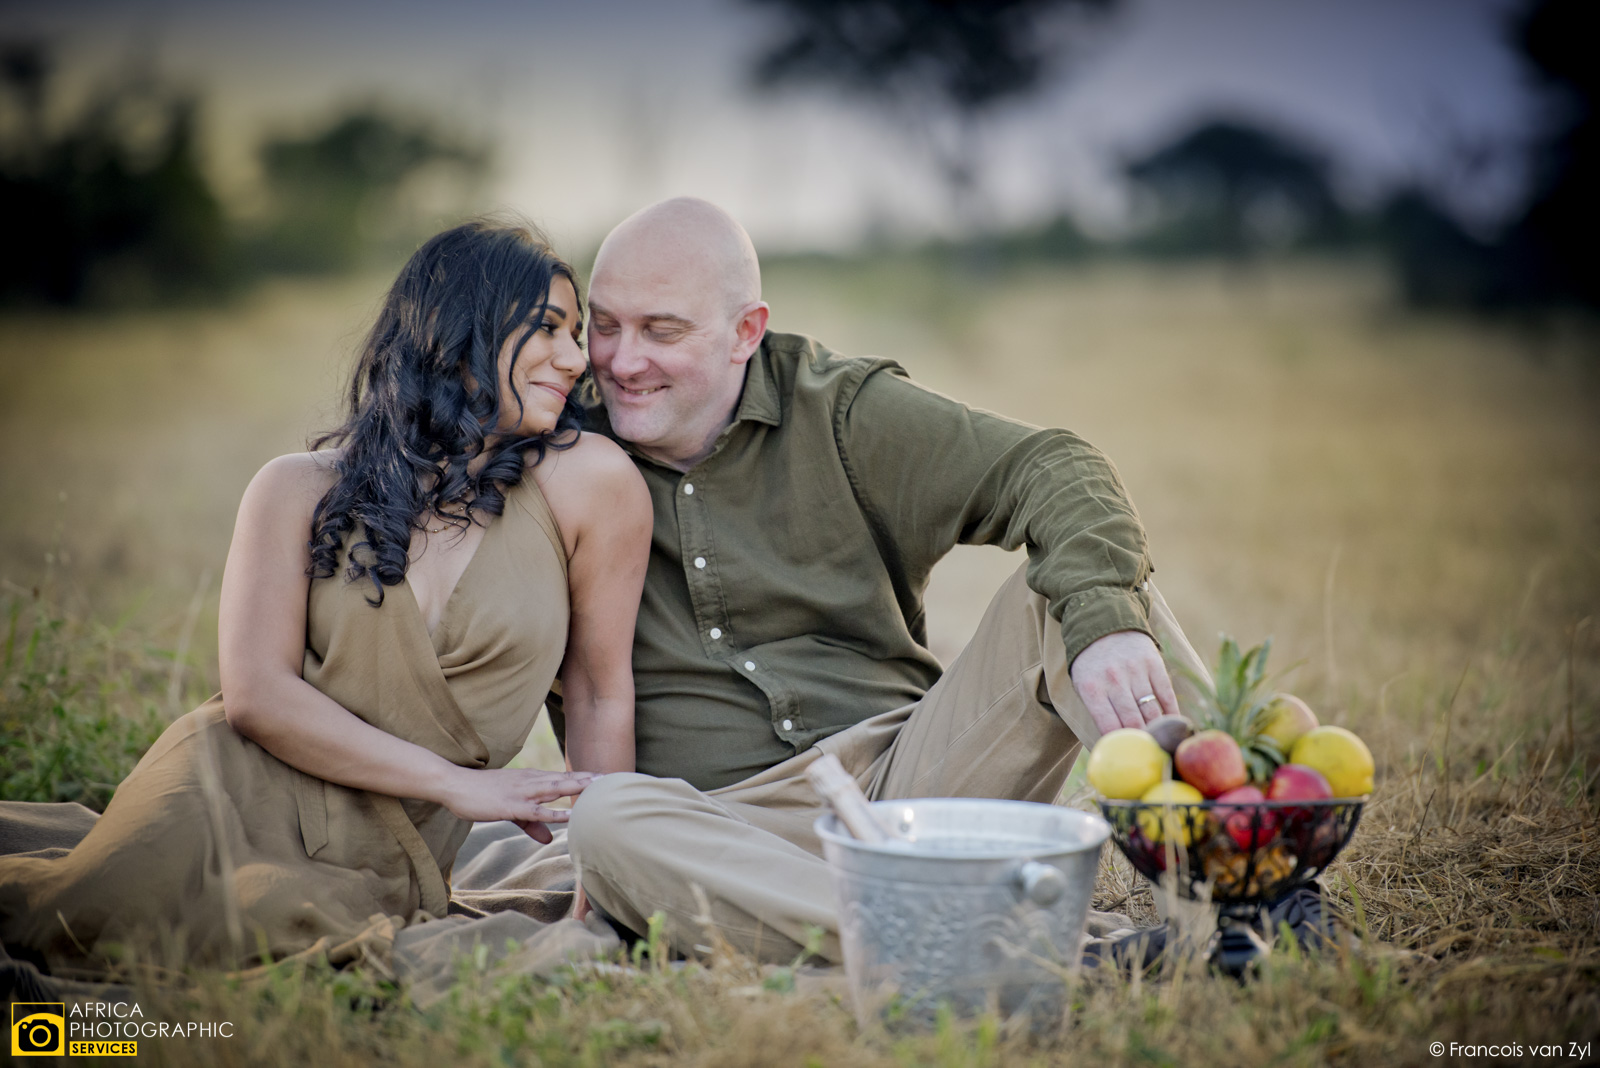 Francois van Zyl Wedding Portrait Photographer Mpumalanga South Africa  D817029 - Safari Portraiture, a behind the scenes look